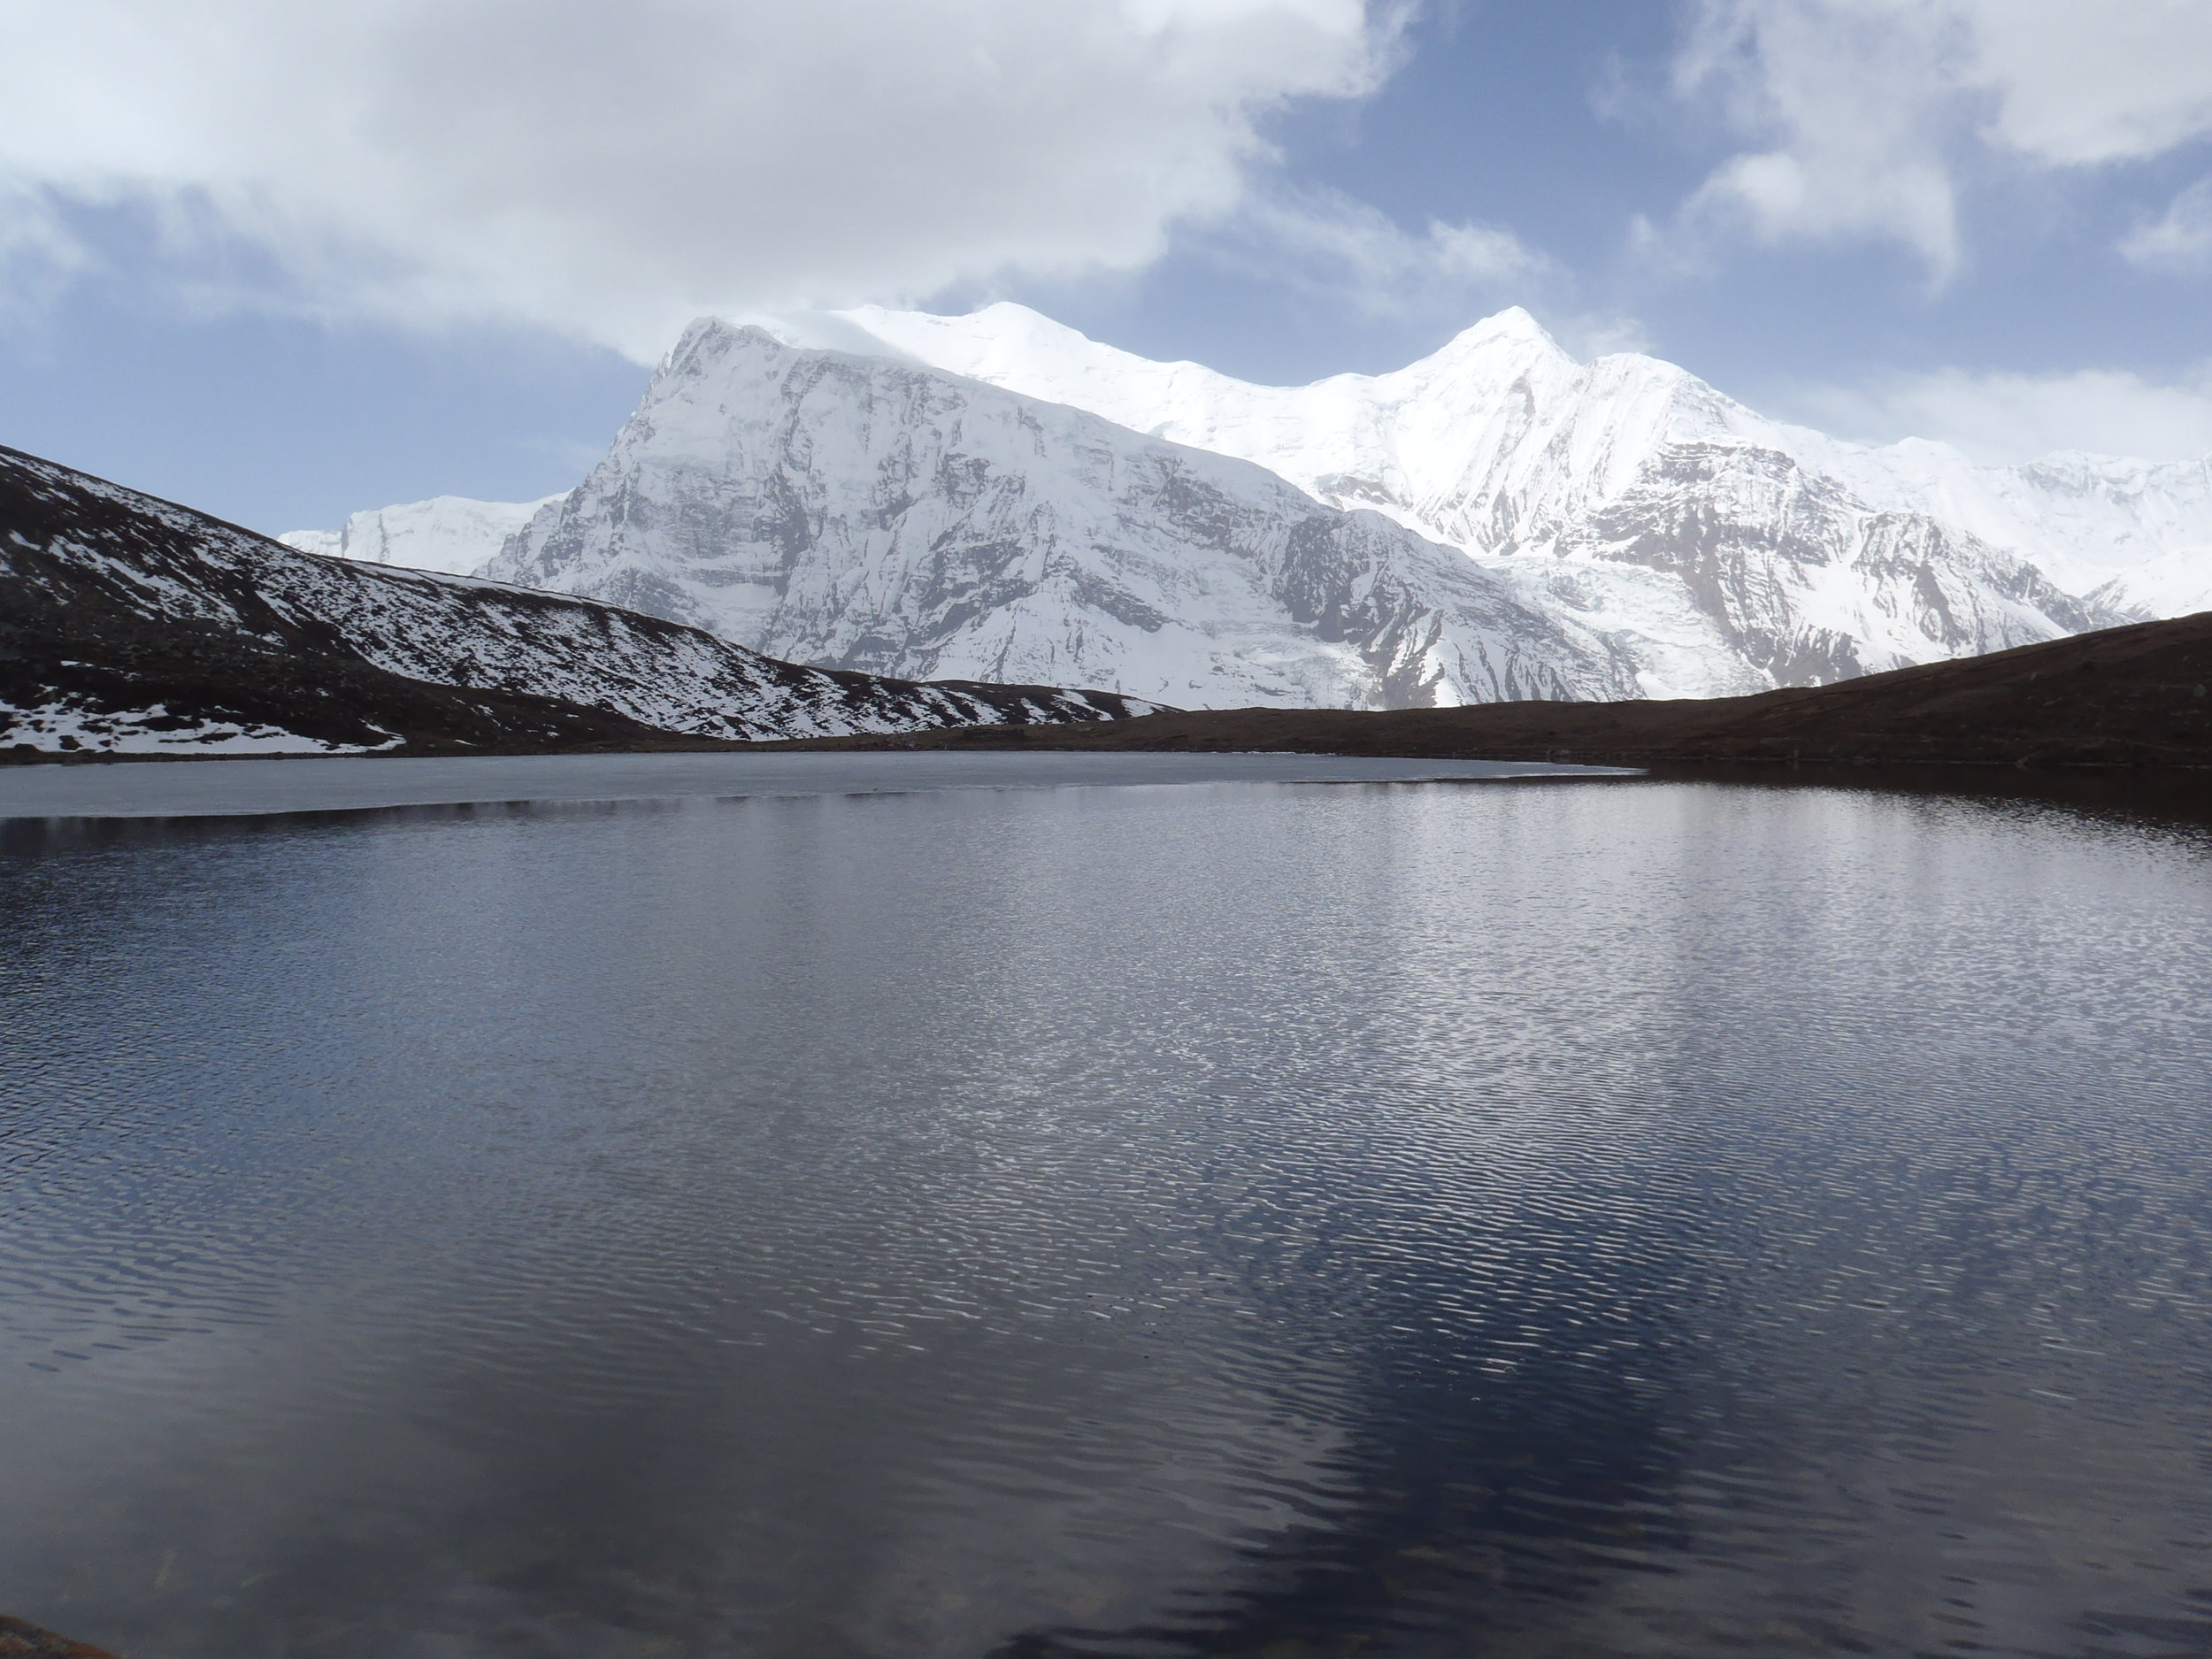 The magnificent Ice Lake (4620m).